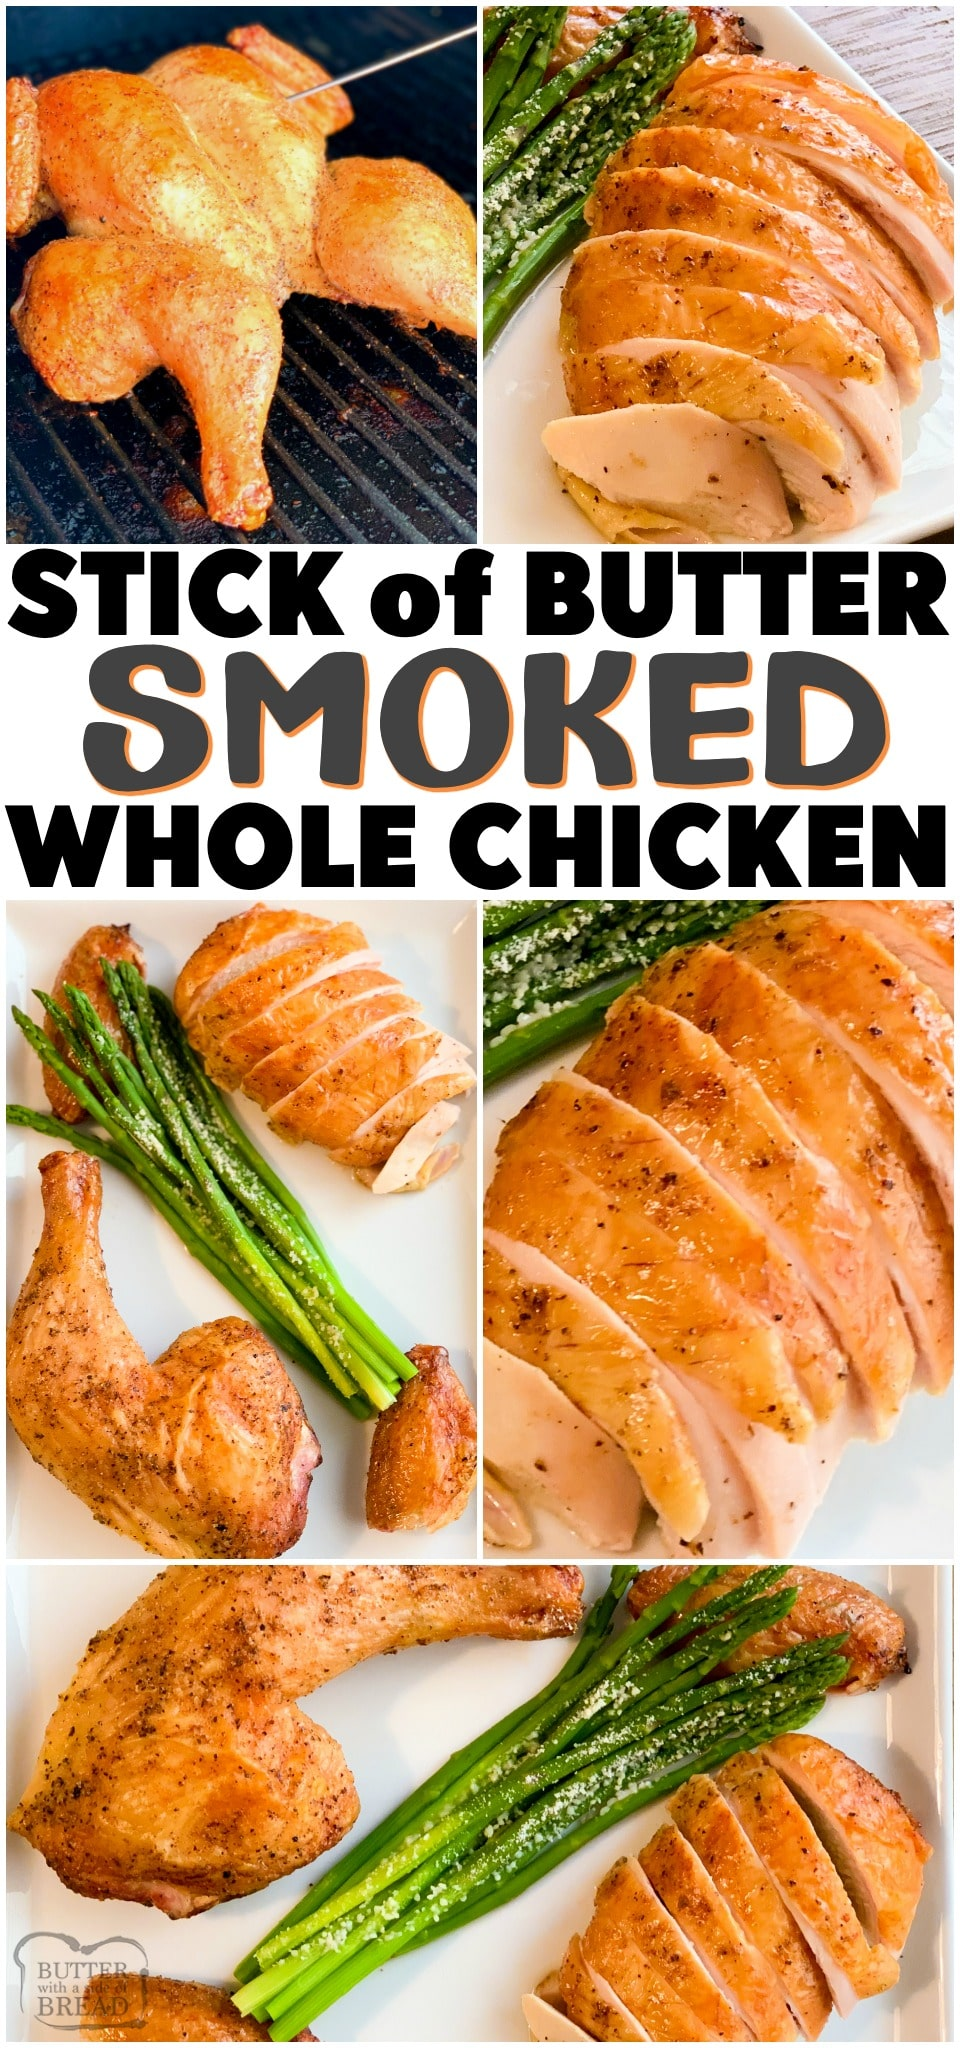 Butter Smoked Whole Chicken that's moist and super flavorful! Spatchcocked chicken cooked in a smoker, brushed with a stick of melted butter and fresh herbs for a perfect whole chicken dinner.